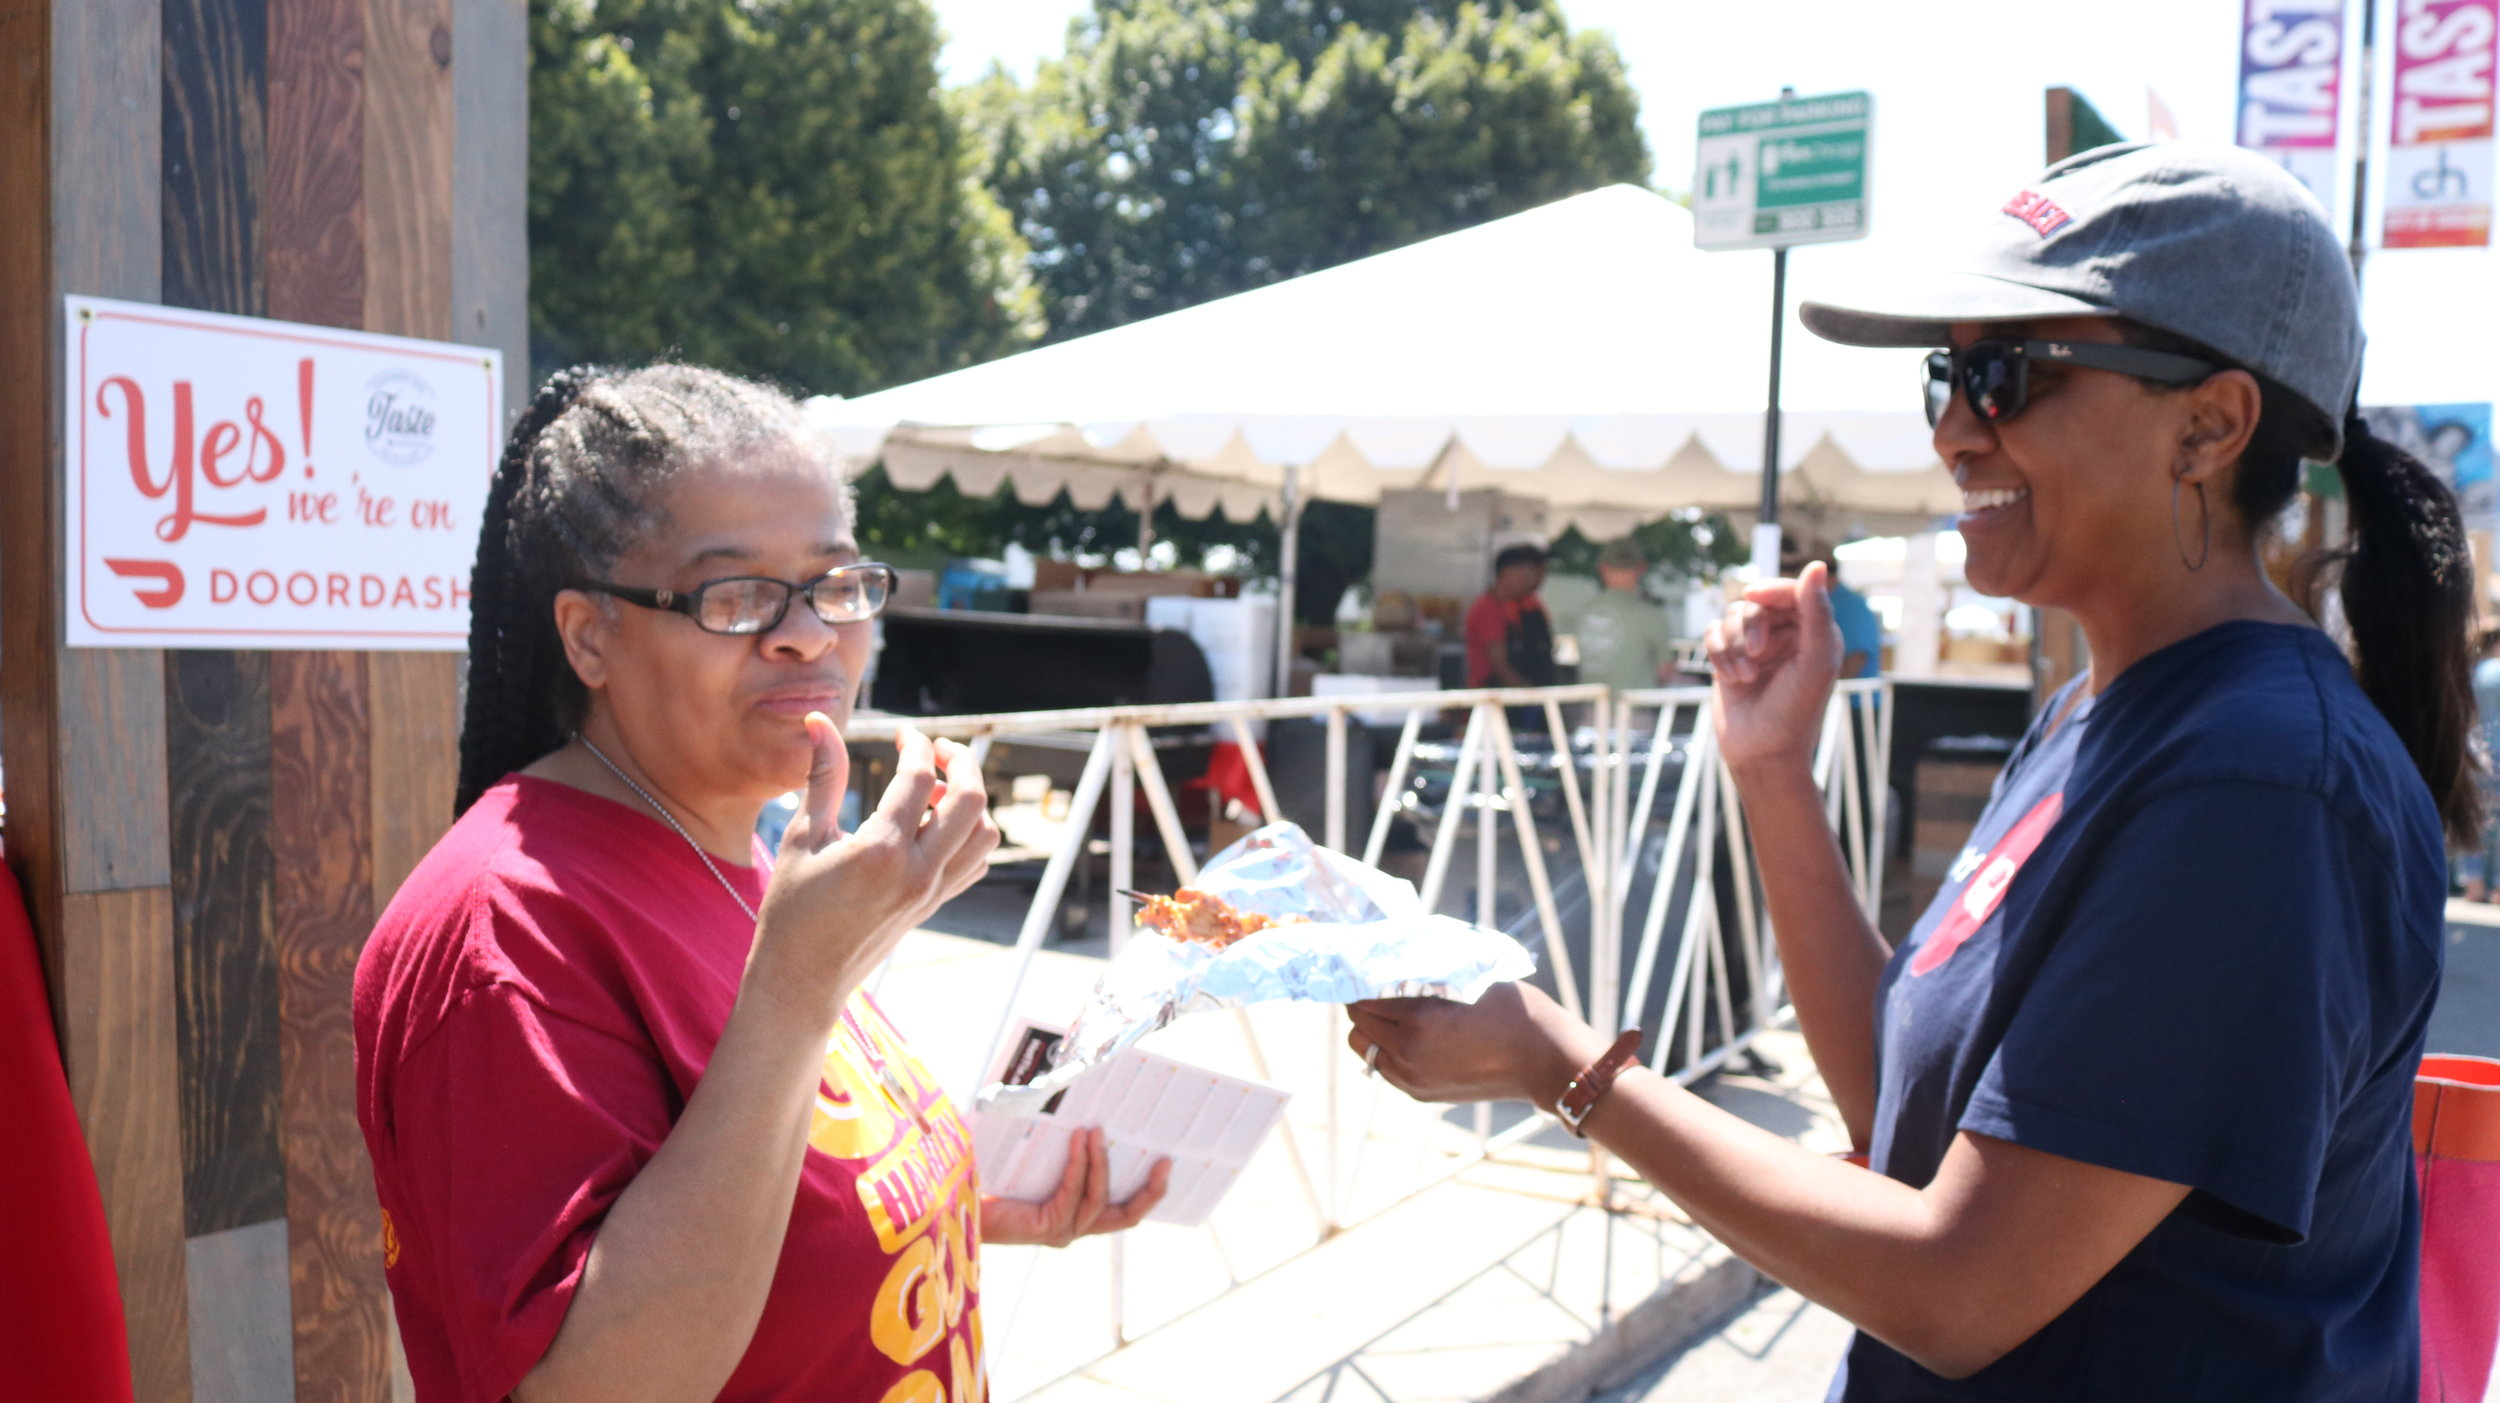 Two first-timers at Grill City sampling the Pork BBQ on a stick. Photo by Clariza Adao